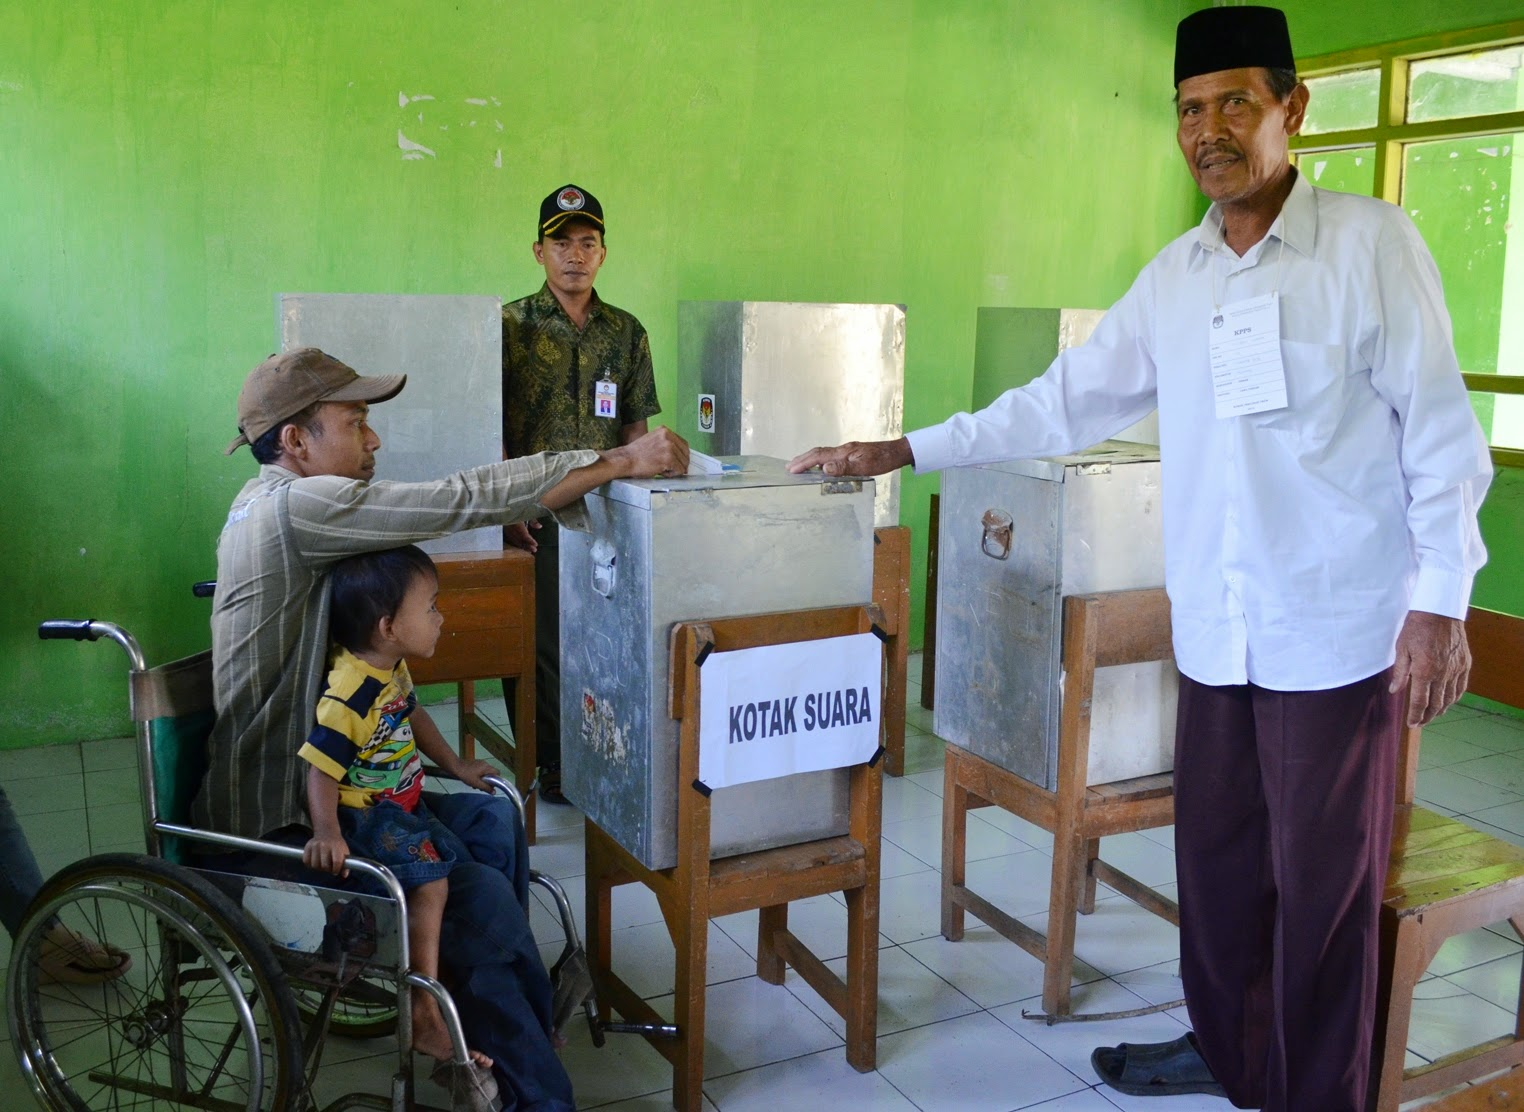 Phisically impaired voter is inserting his ballot paper in Cetral Java